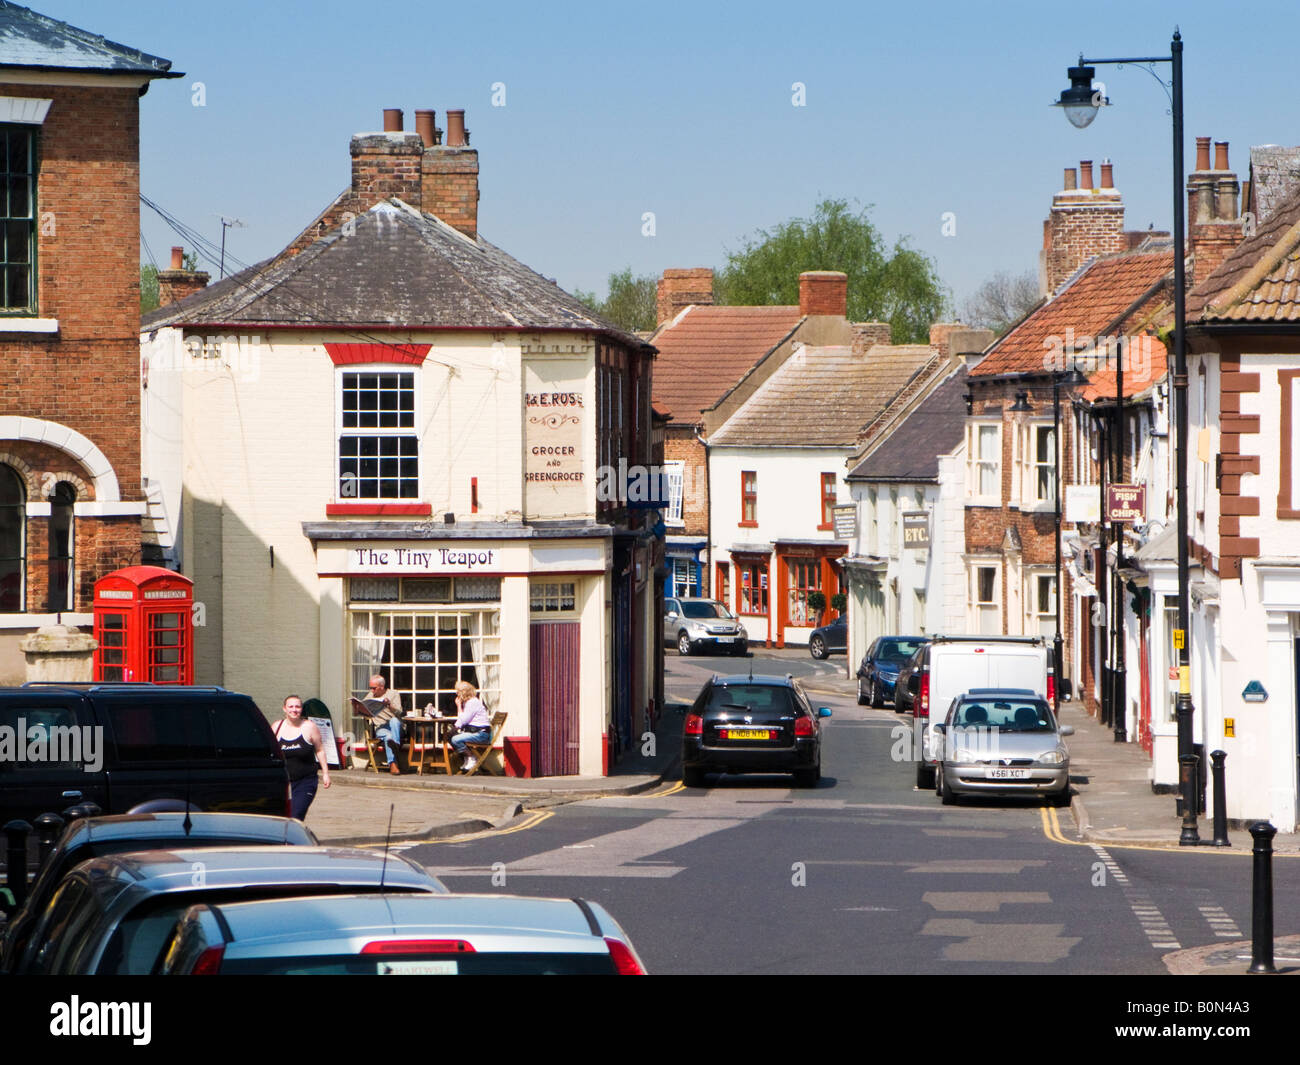 High Street in Epworth, North Lincolnshire, UK - Stock Image